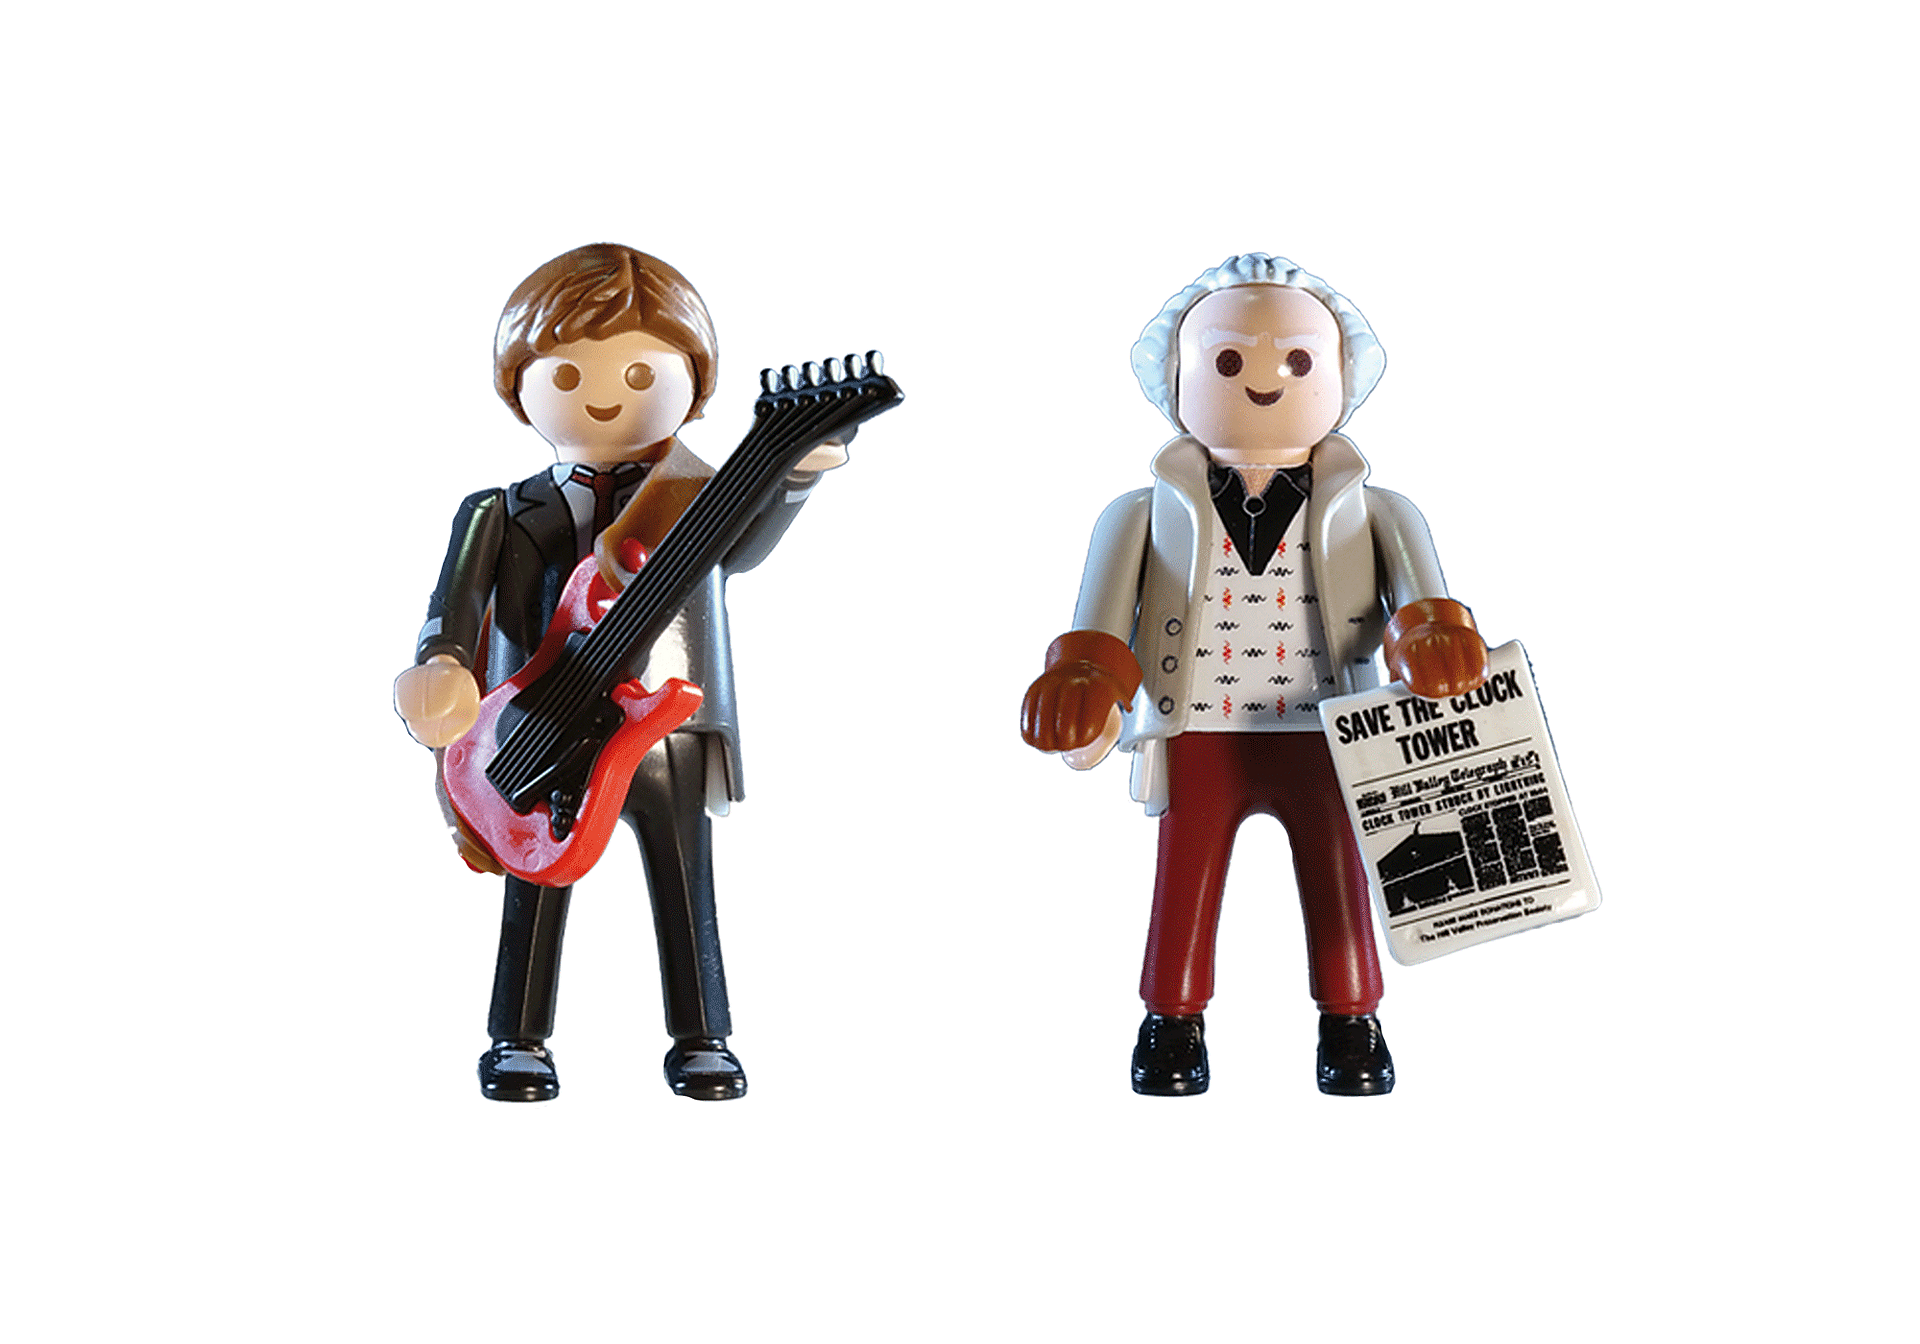 70459 Back to the Future Marty Mcfly and Dr. Emmett Brown zoom image2